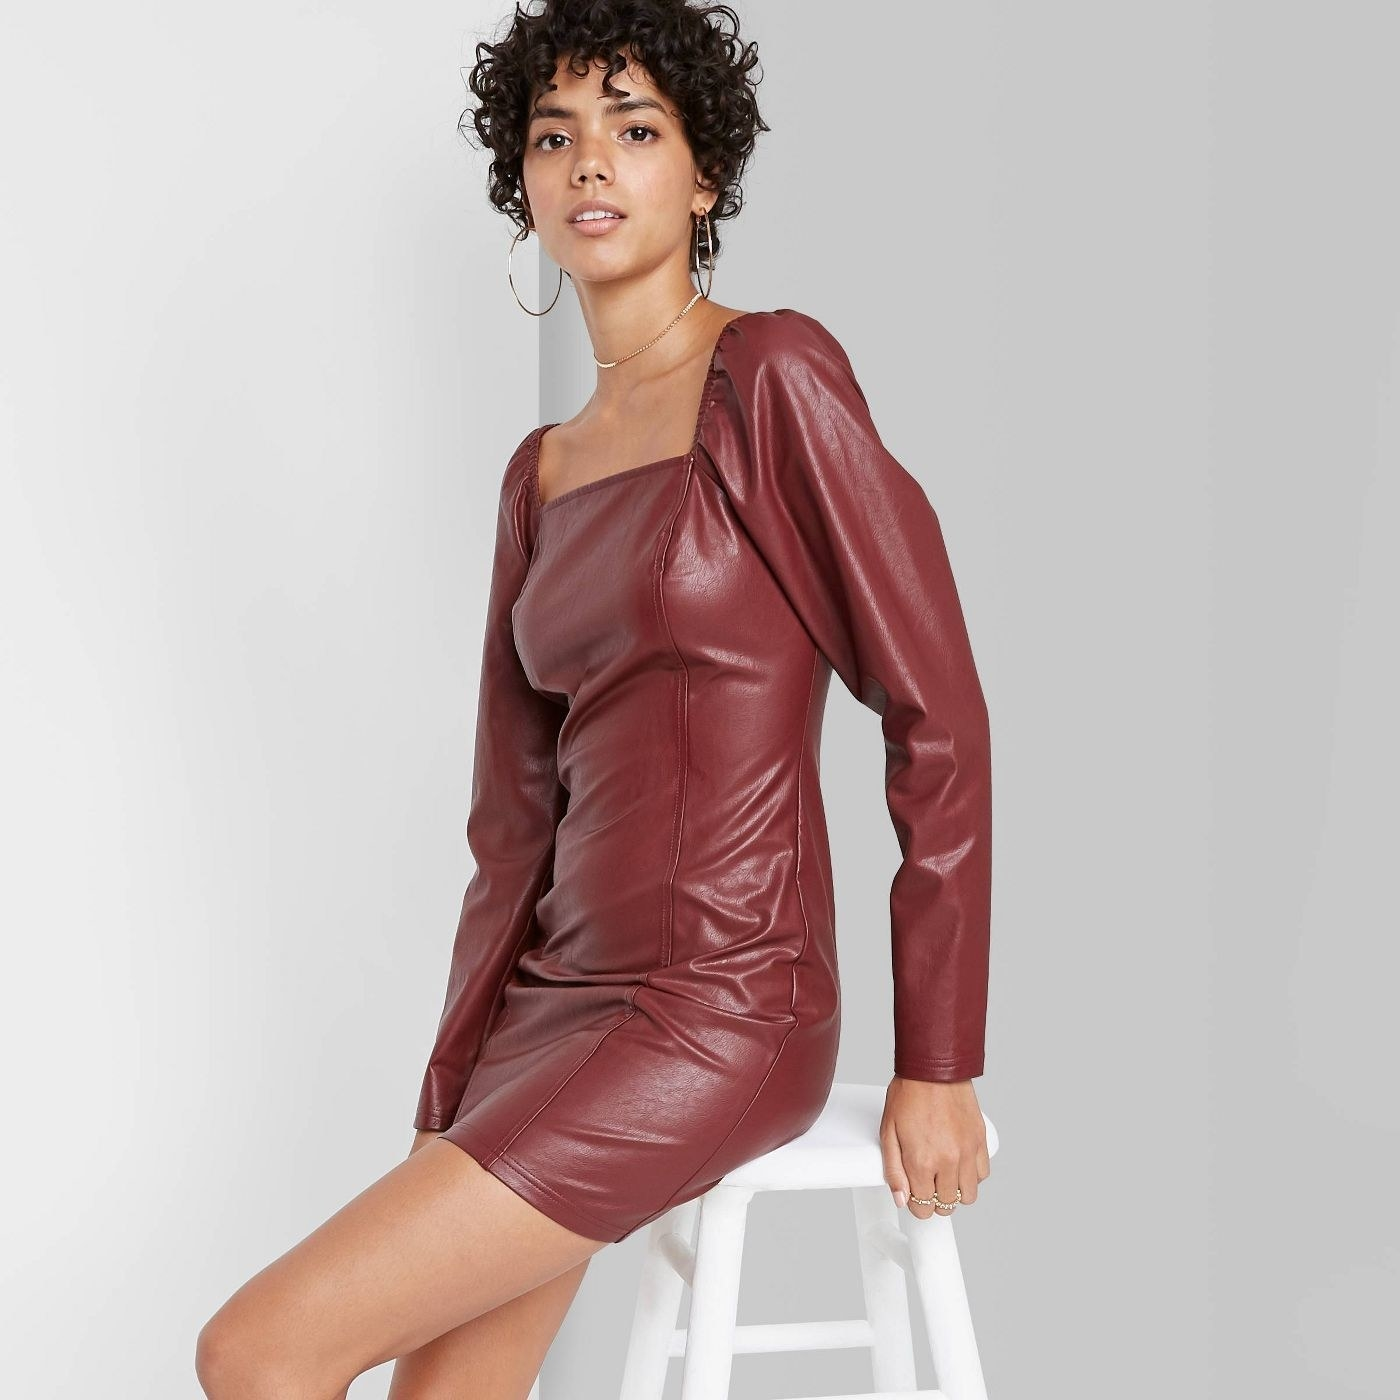 Model in red faux leather dress